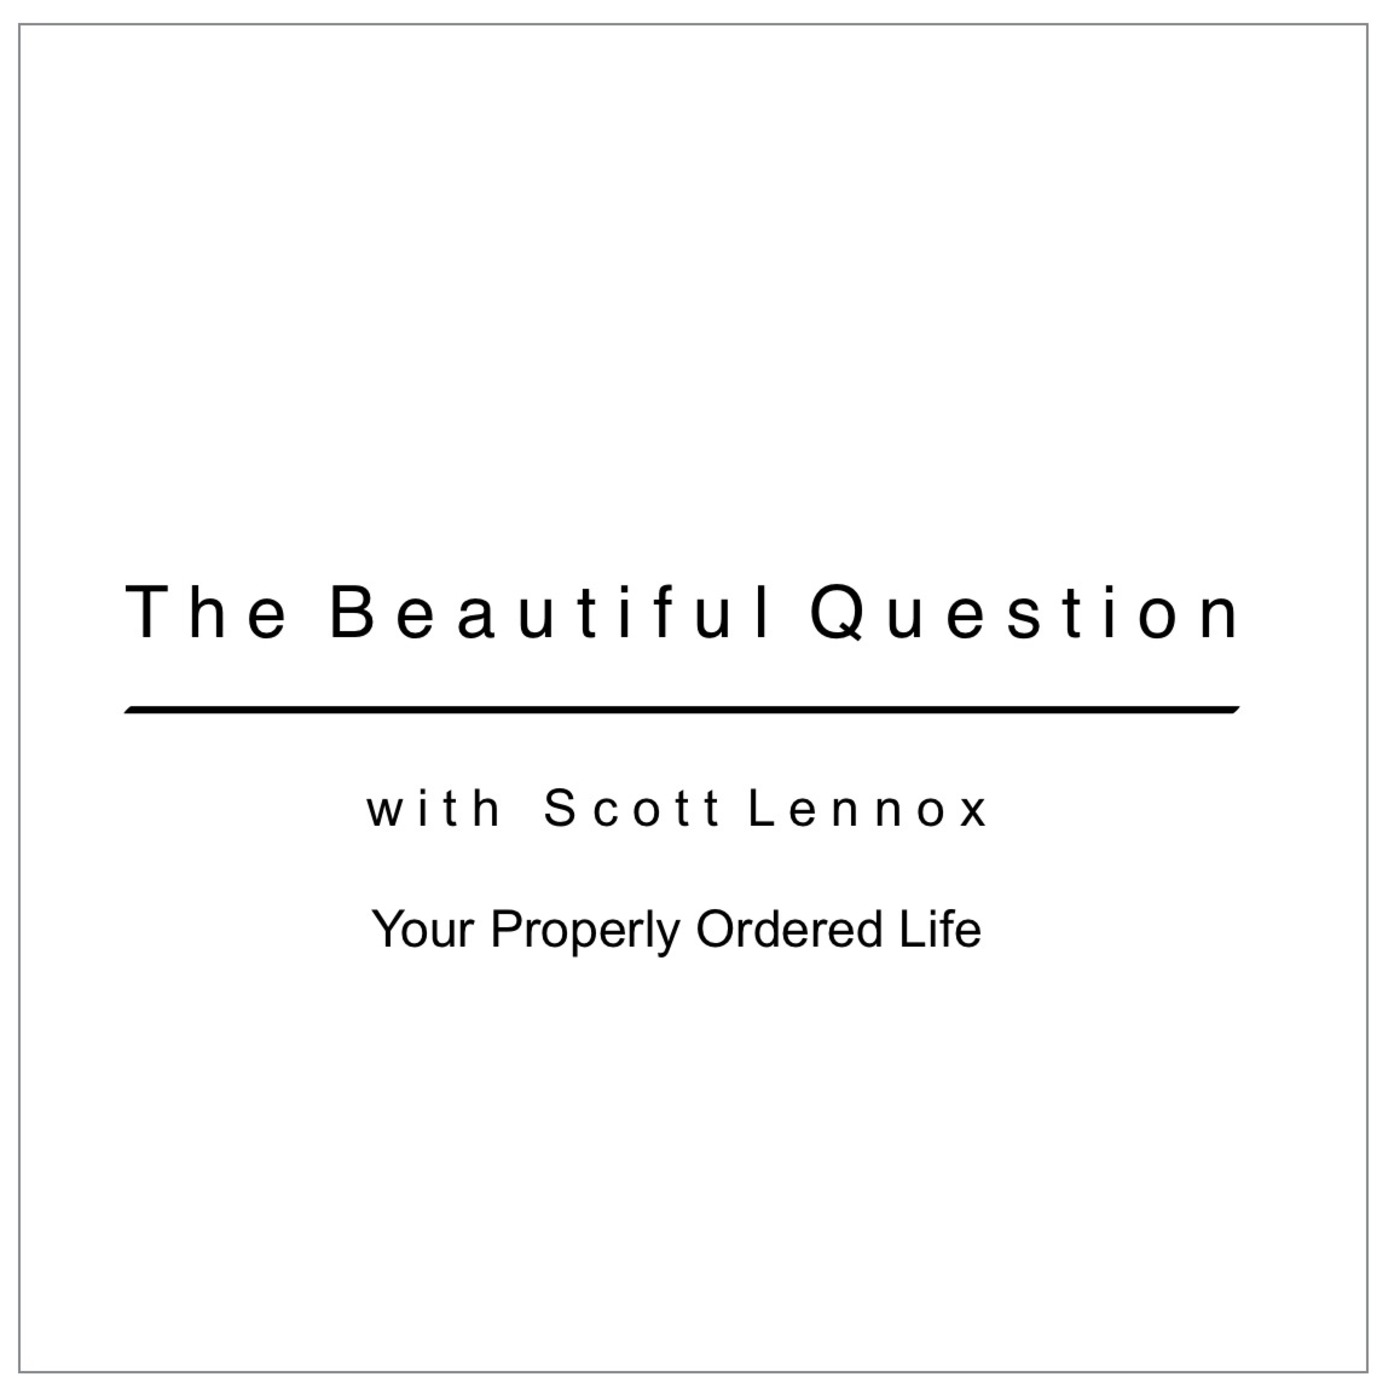 Your Properly Ordered Life